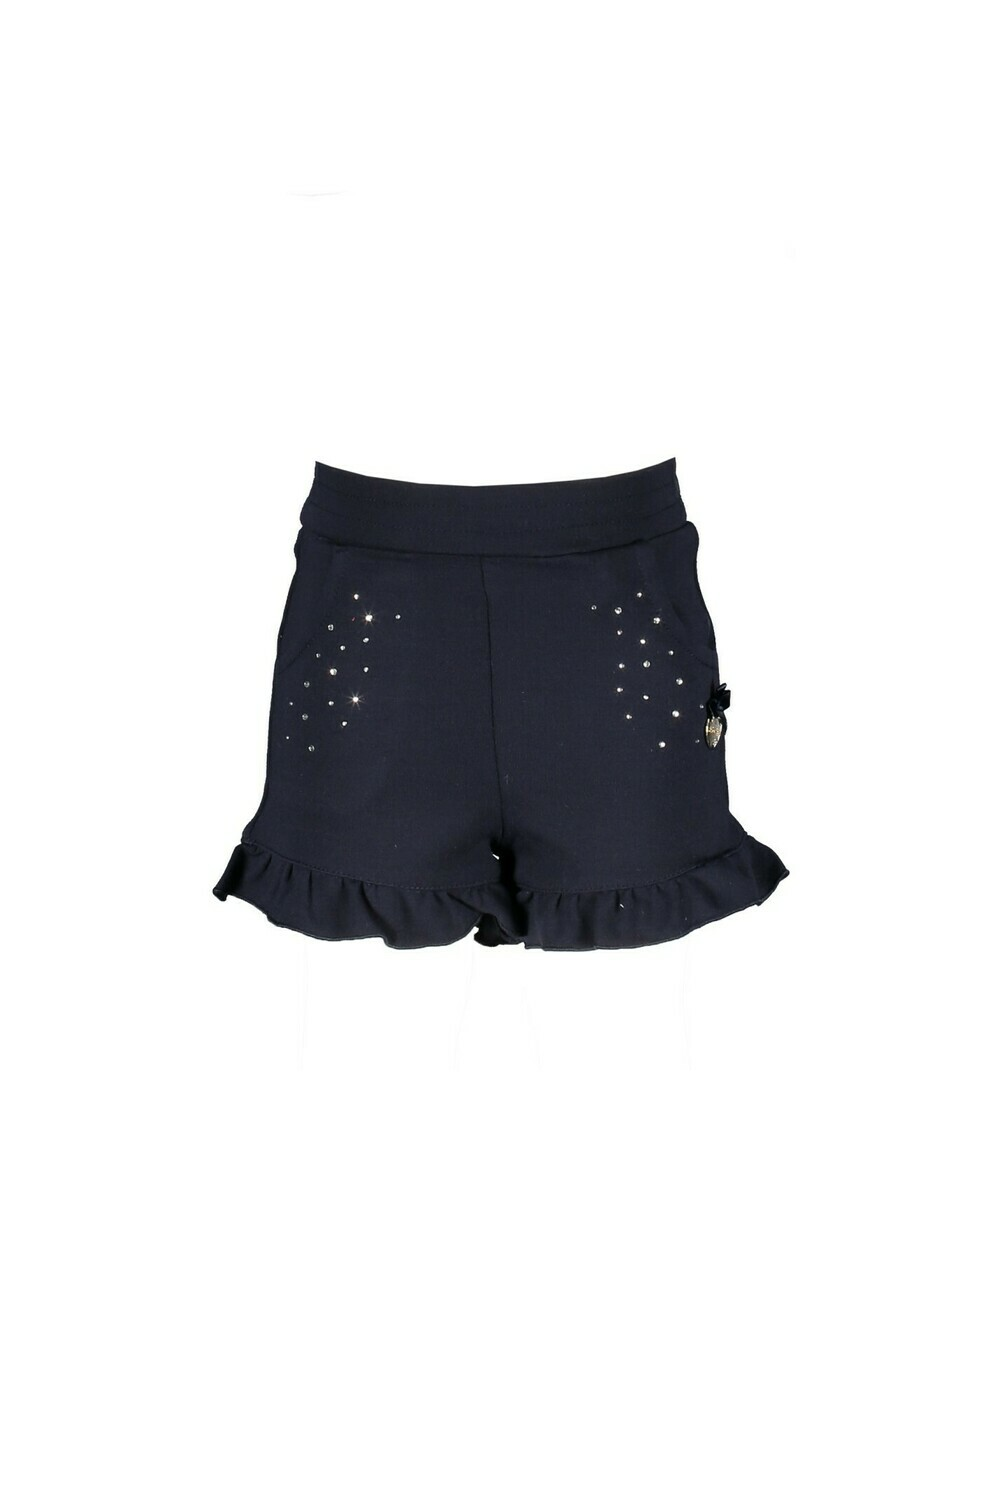 Le Chic Shortje Donkerblauw Met Glitters